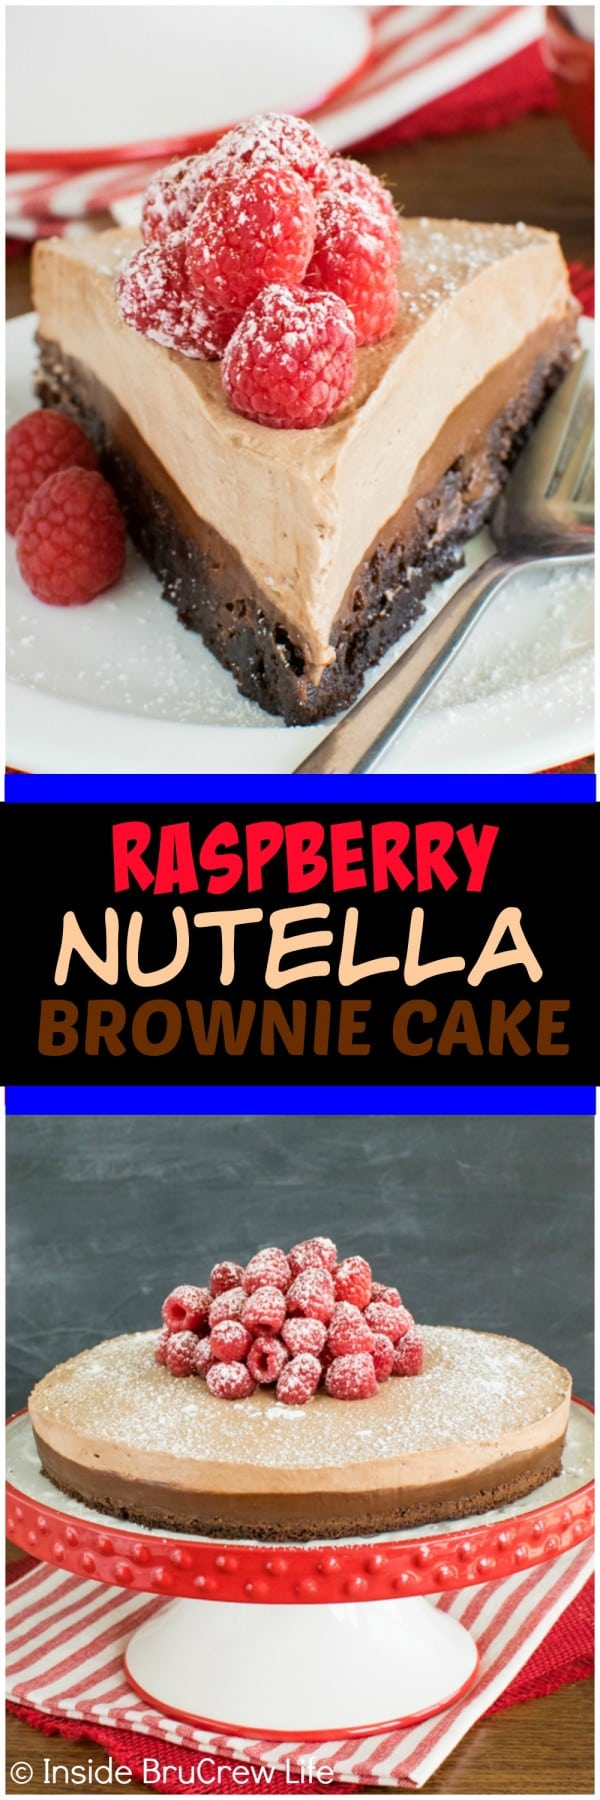 Raspberry Nutella Brownie Cake - three layers of chocolate topped with fresh raspberries is a delicious treat. Definitely a dessert recipe worth trying!